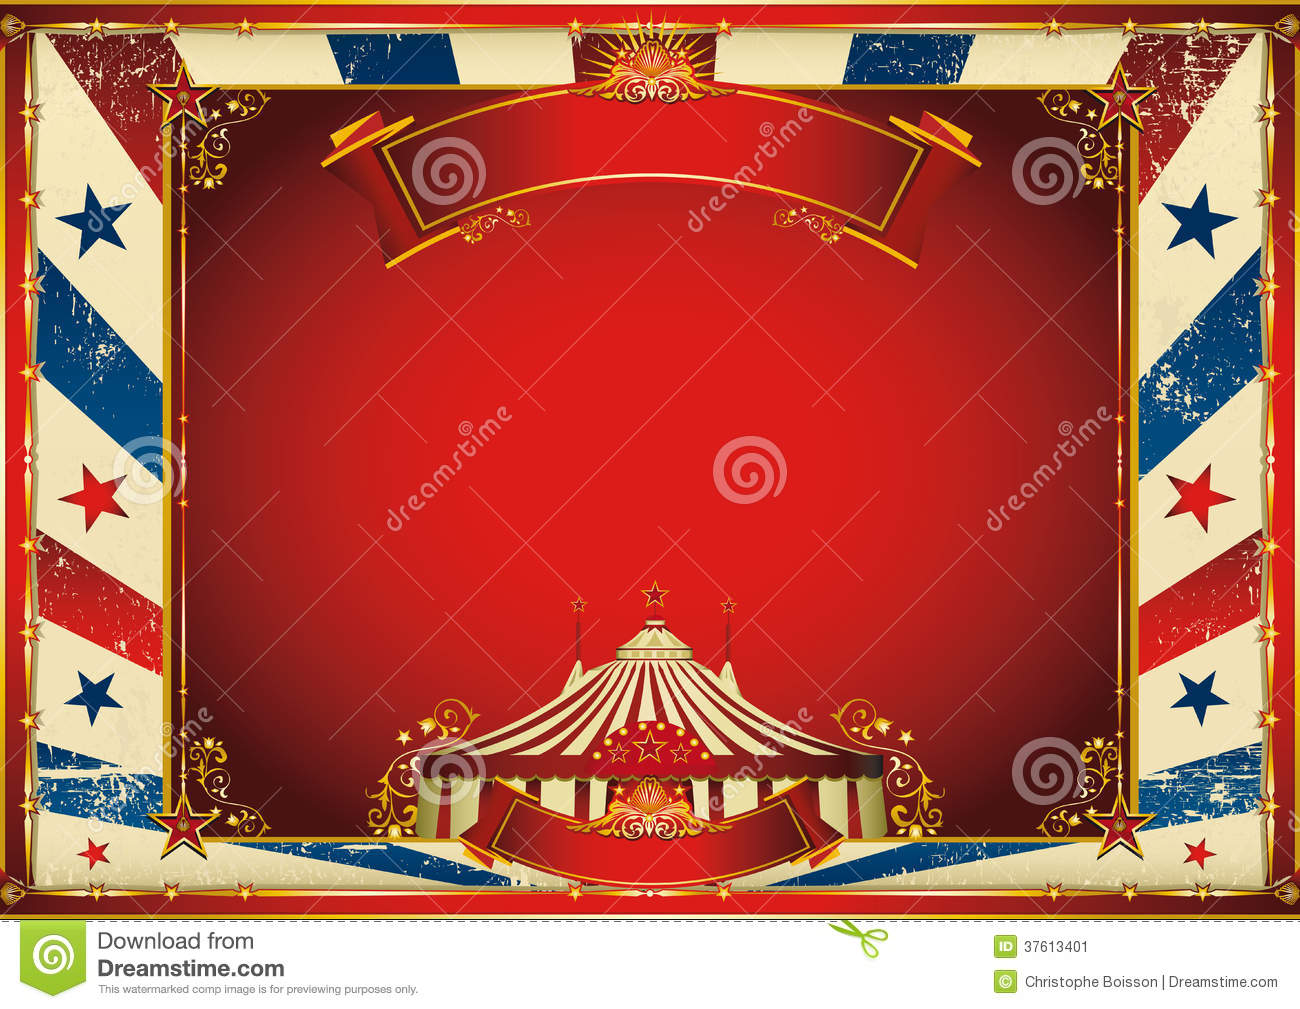 Tent Invitation Template was awesome invitation layout